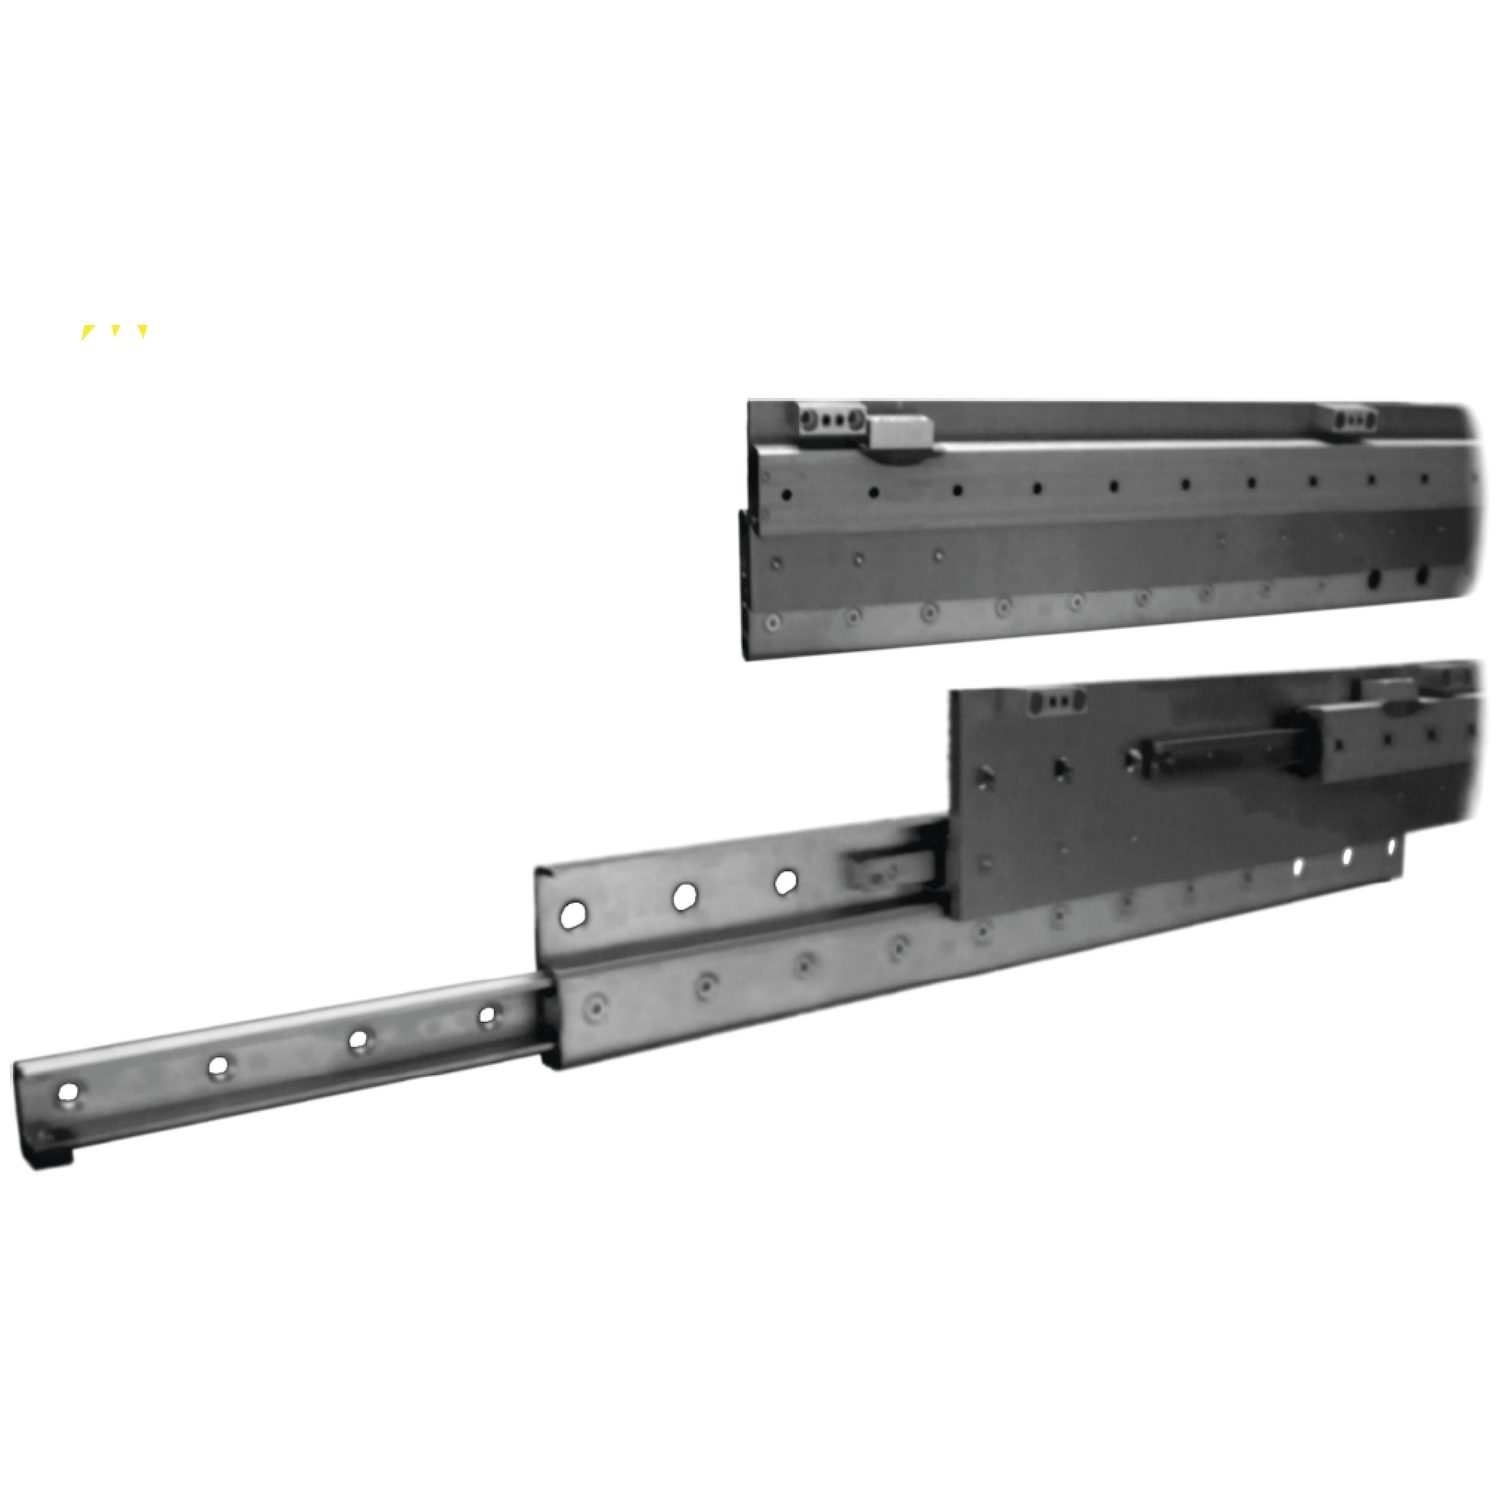 Extended Stroke Telescopic Slides These are extended stroke (150%), heavy duty telescopic rails, with high load capacity and stiffness.